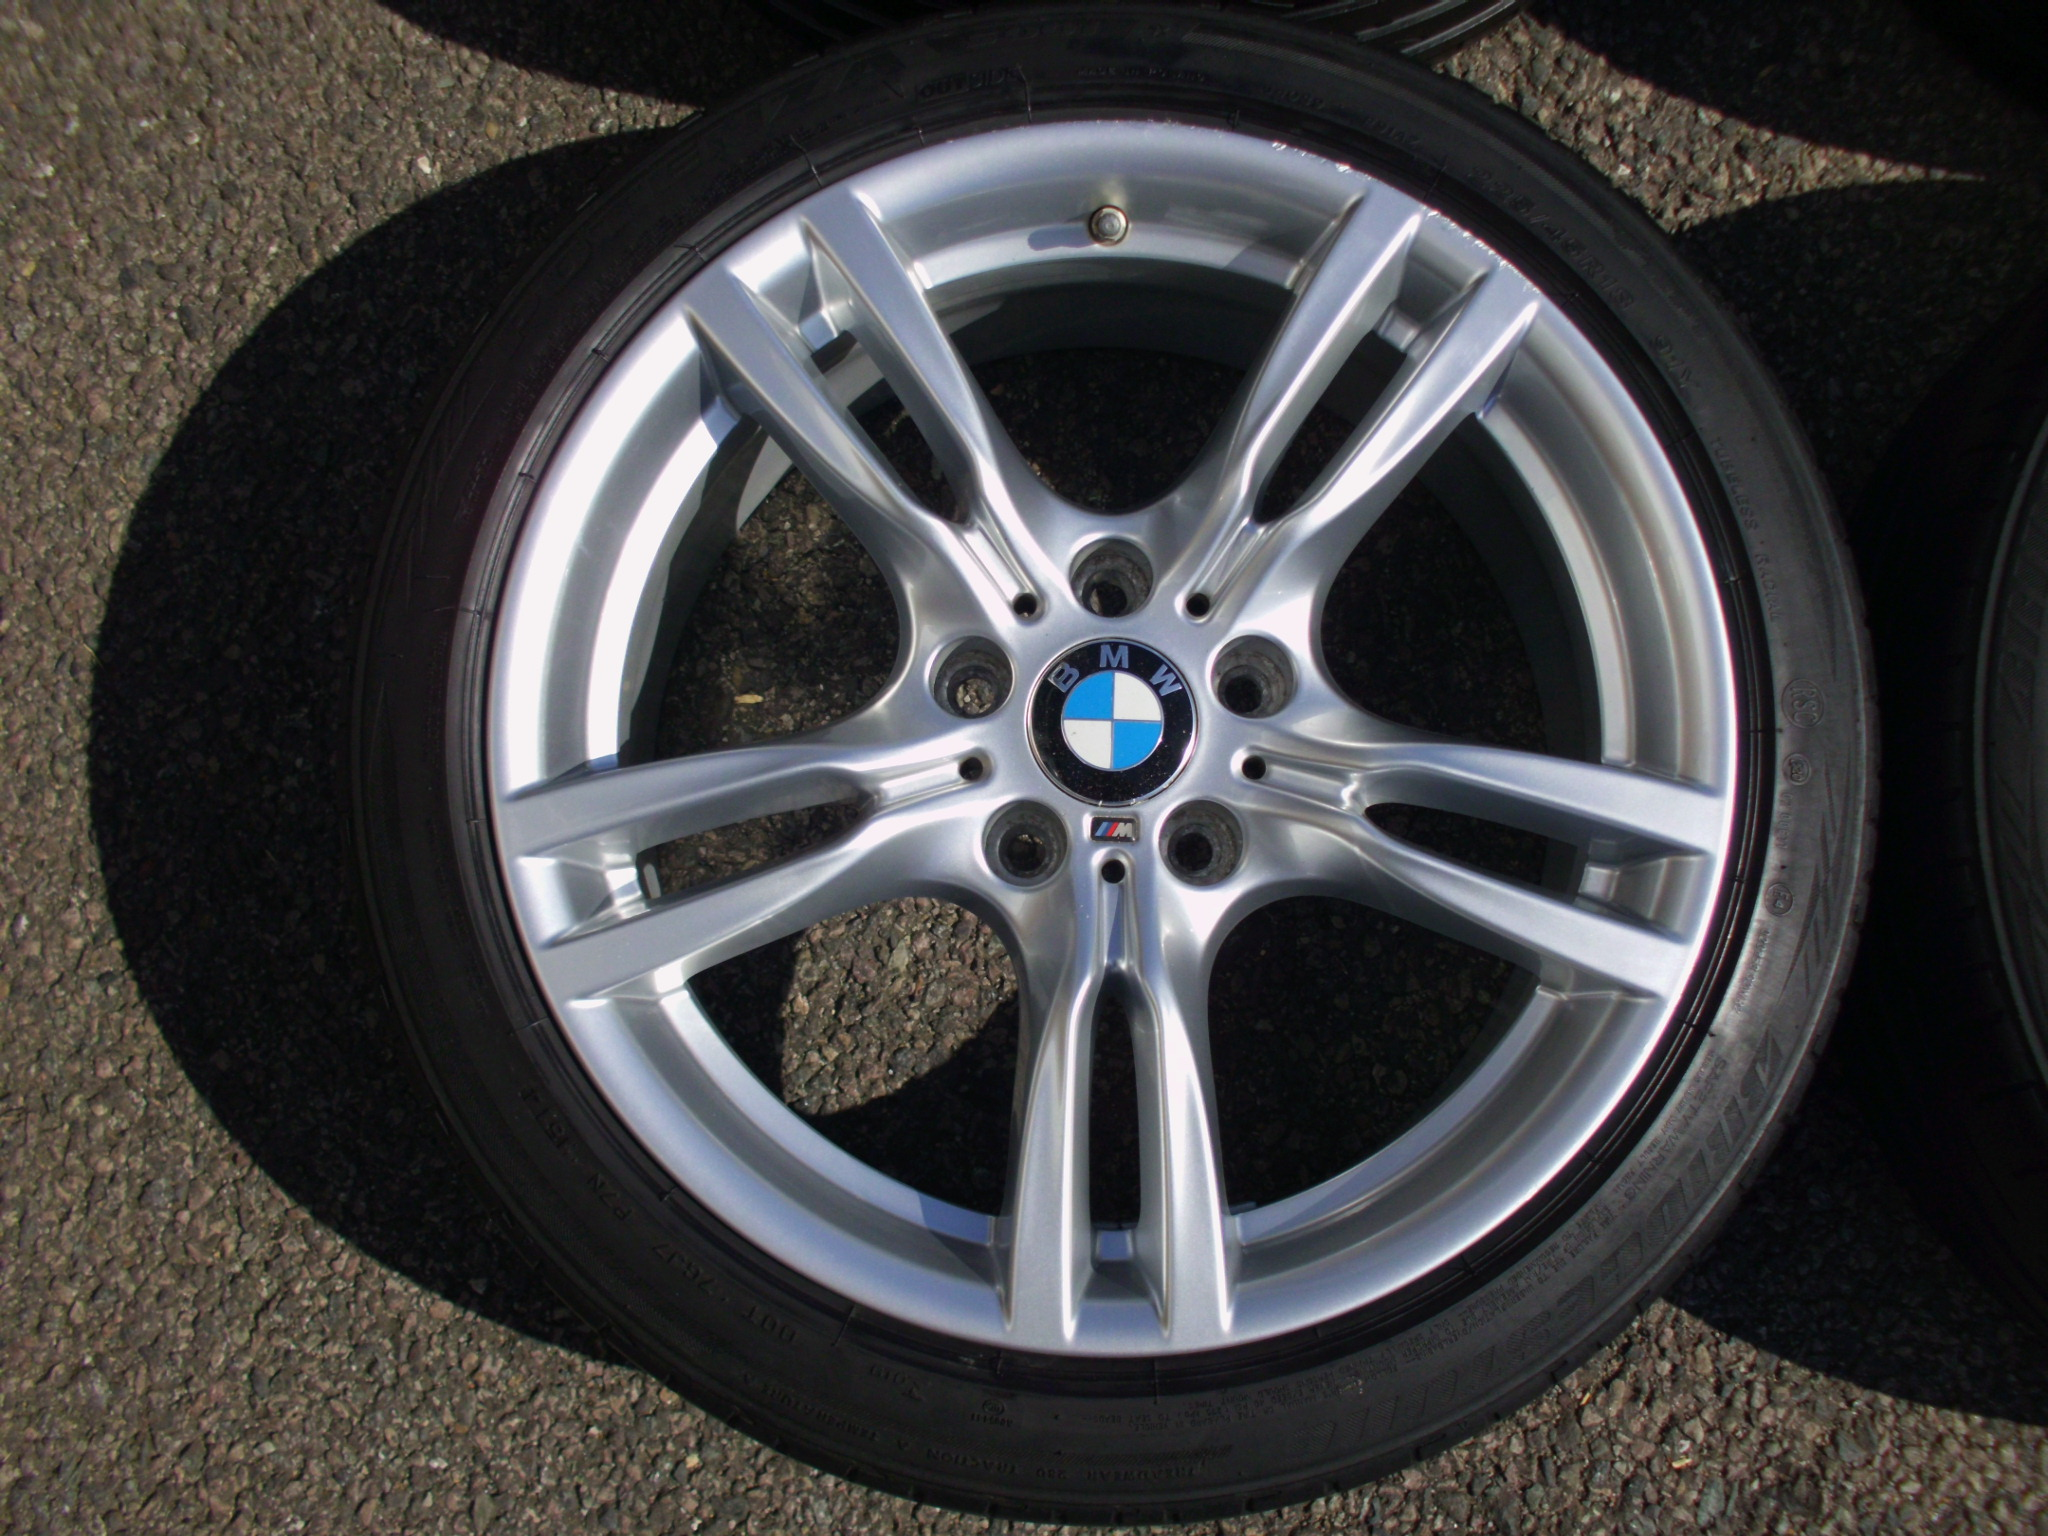 "USED 18"" GENUINE STYLE 400 M SPORT ALLOY WHEELS, WIDER REARS, CLEAN, INC BRIDGESTONE VG RUNFLAT TYRES + TPMS"